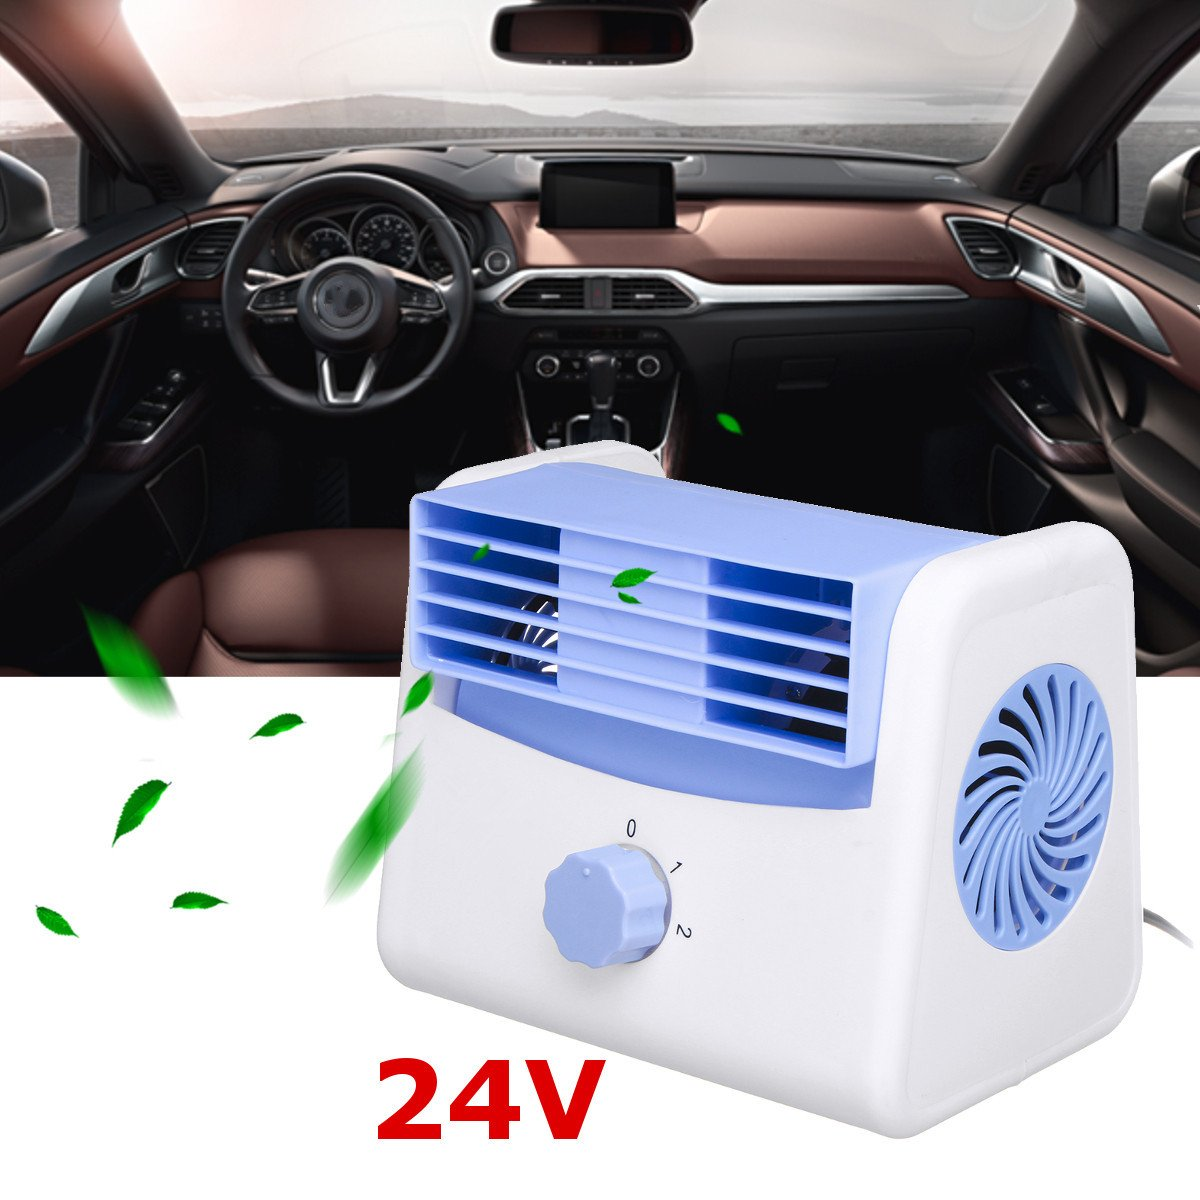 Portable Car Fan Quiet Speed Adjustable Mini Summer Styling Accessories (24V) Shenzhenshi tuobinuo keji youxian gongsi